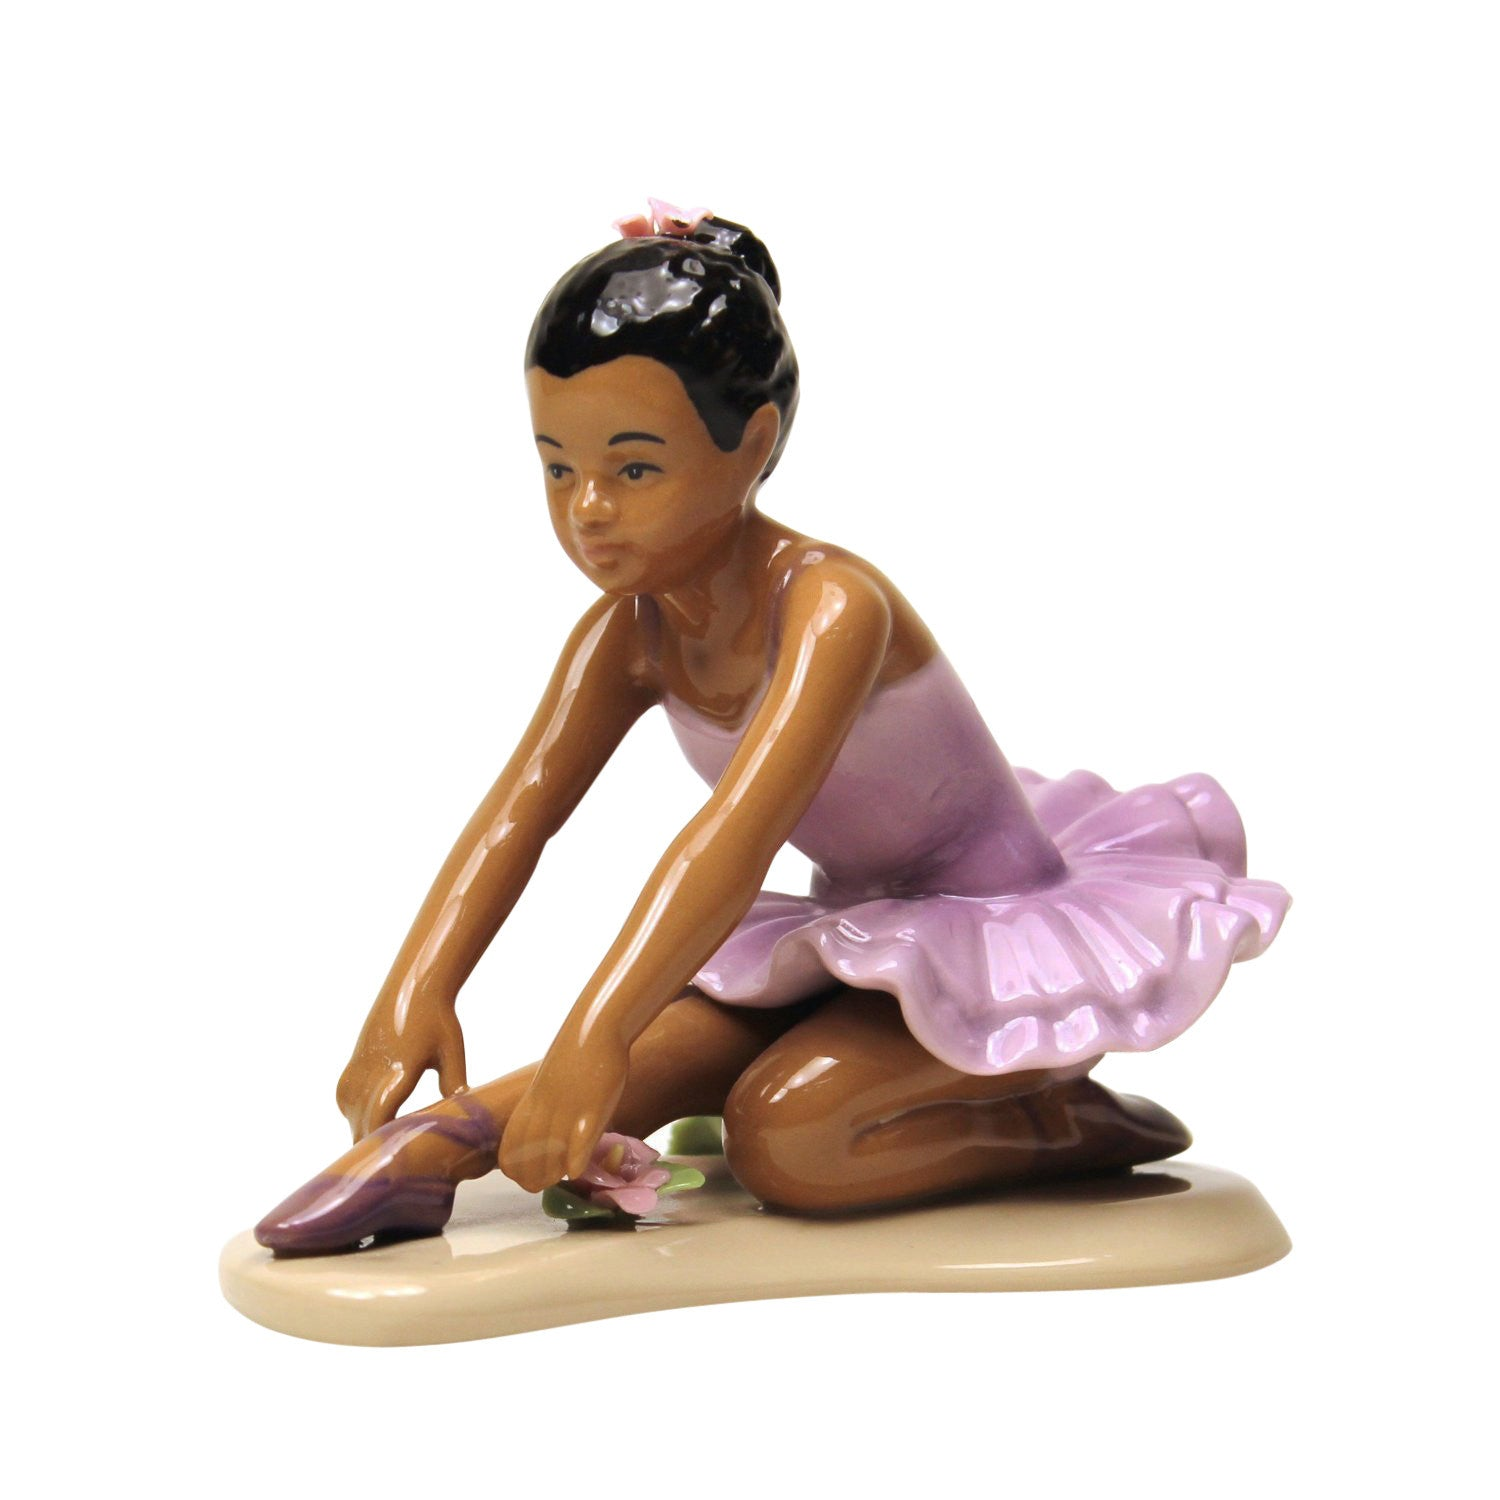 African American Little Ballerina in Lavendar by Cosmos Gifts